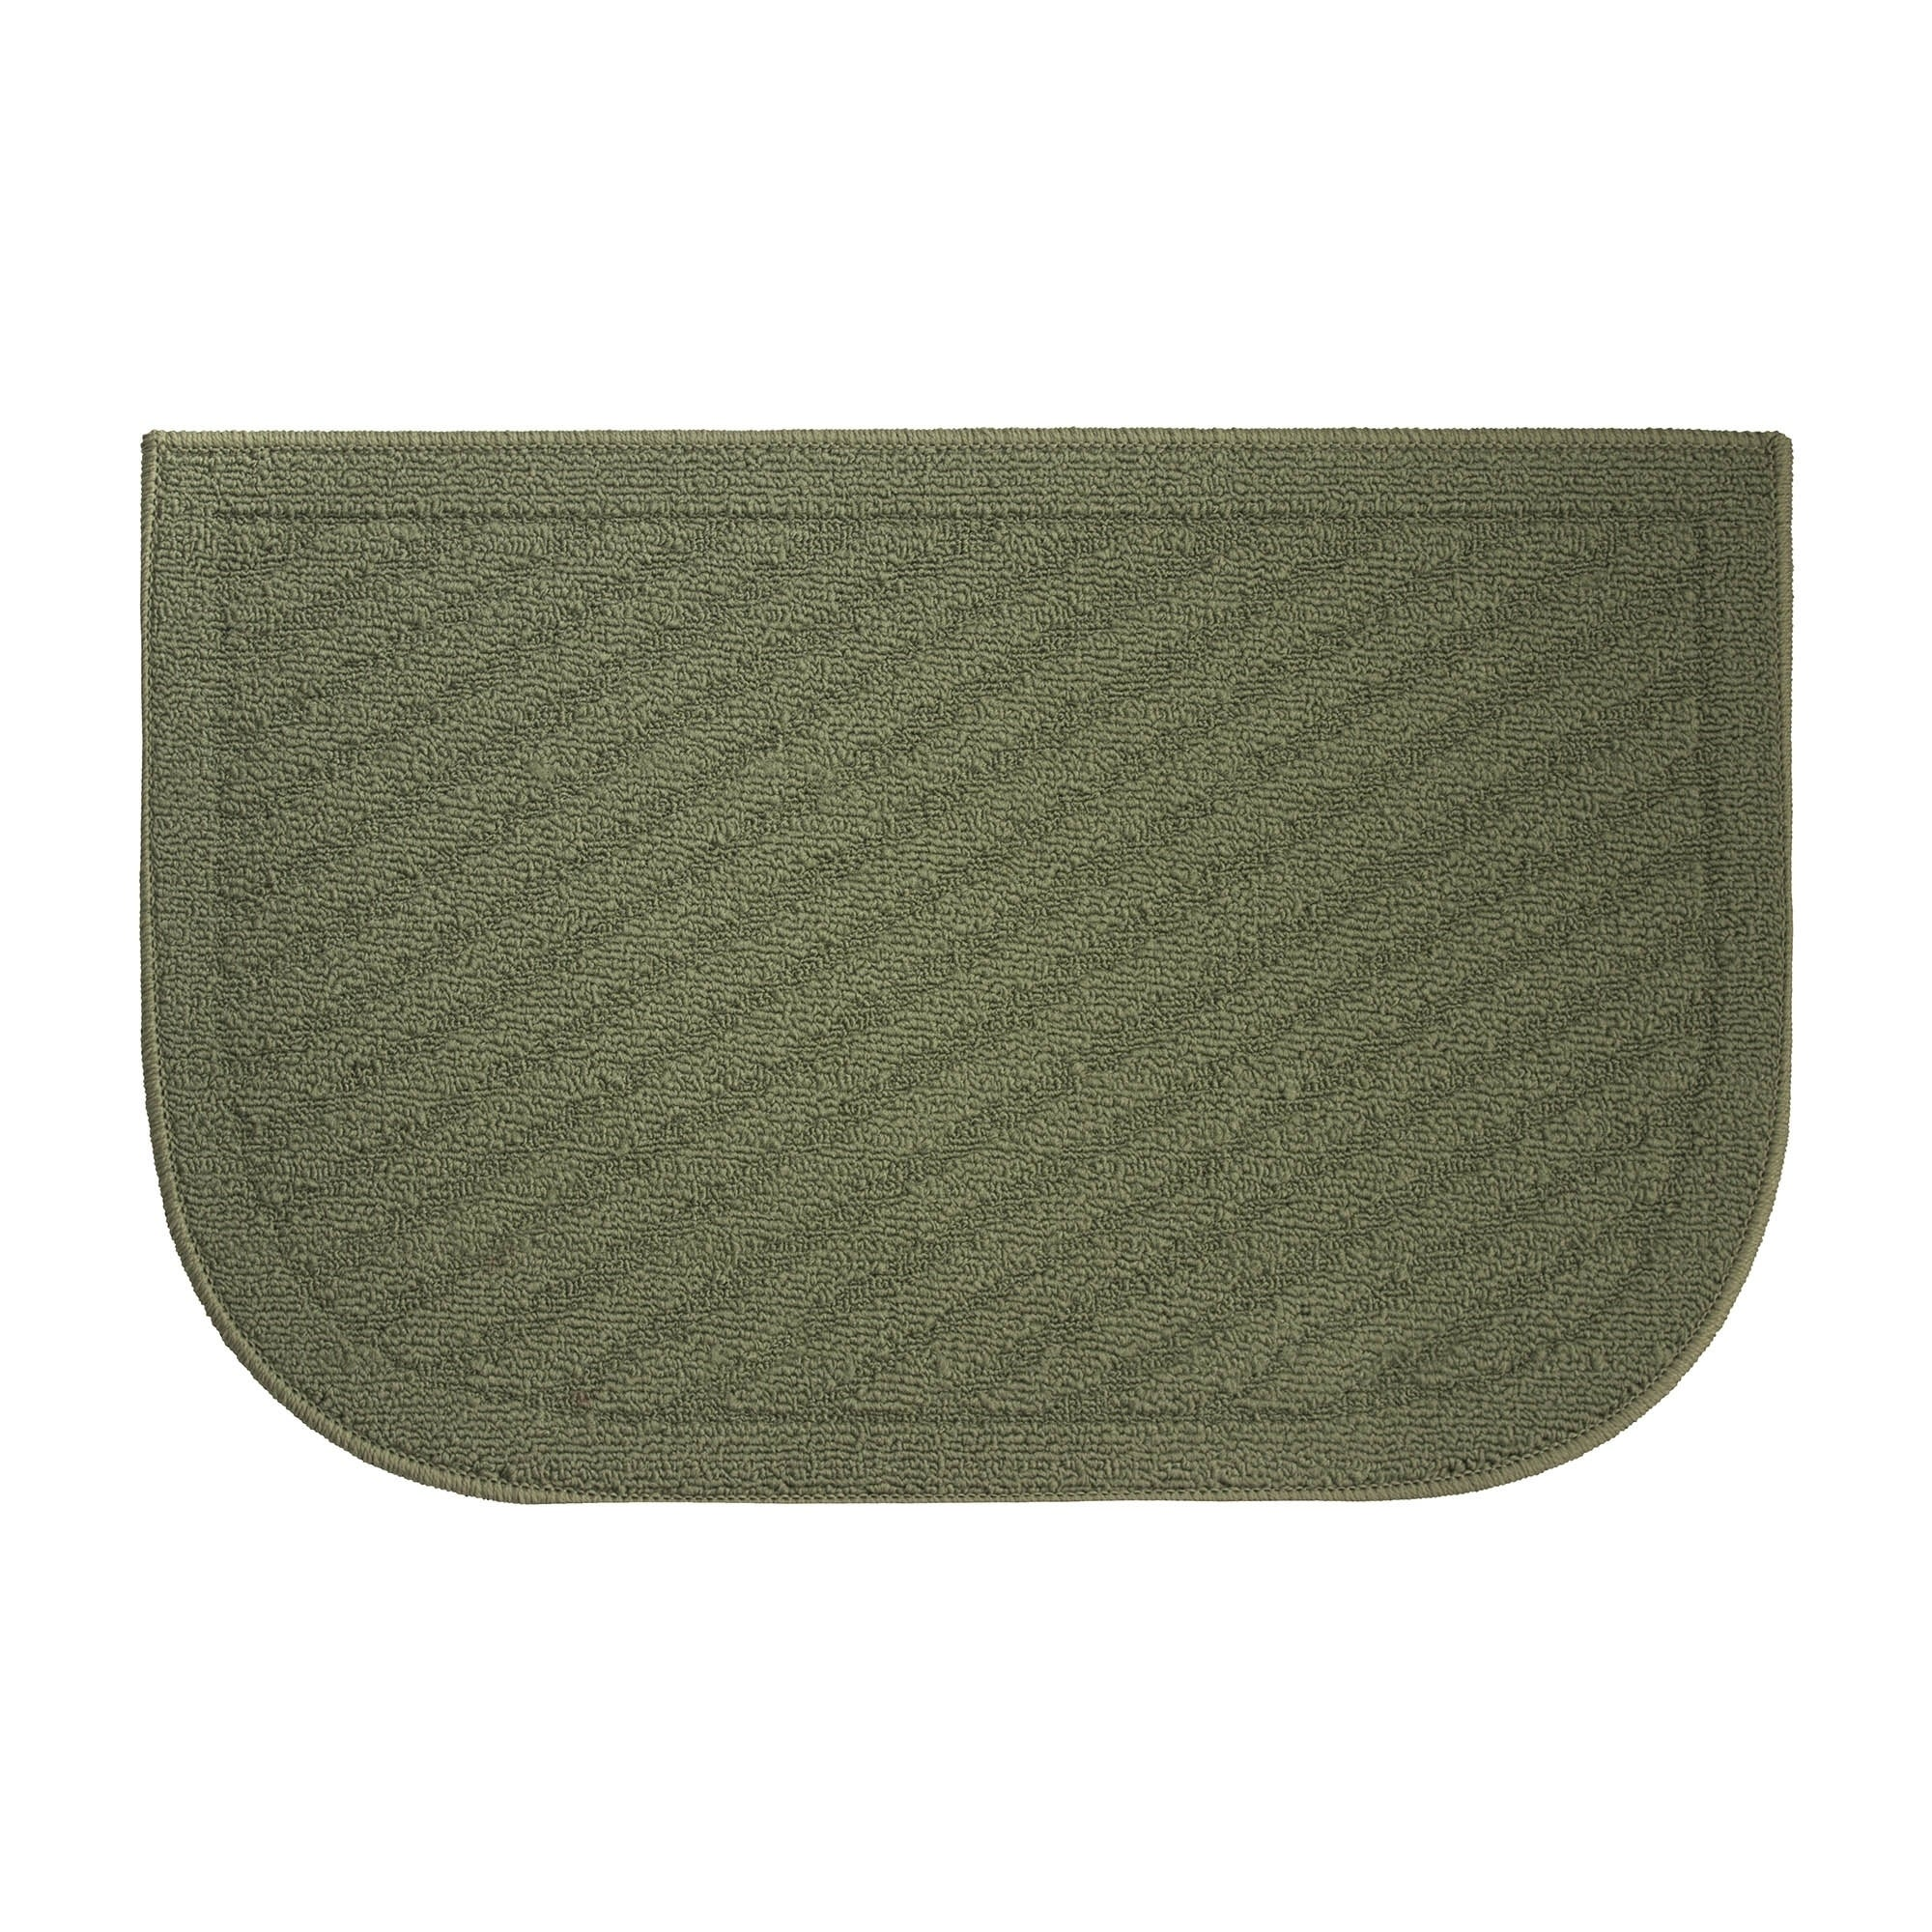 Griddle Textured Loop Sage Green Slice Wedge Shaped Solid Kitchen Rug Sage Green 18 X 28 In Overstock 14575735